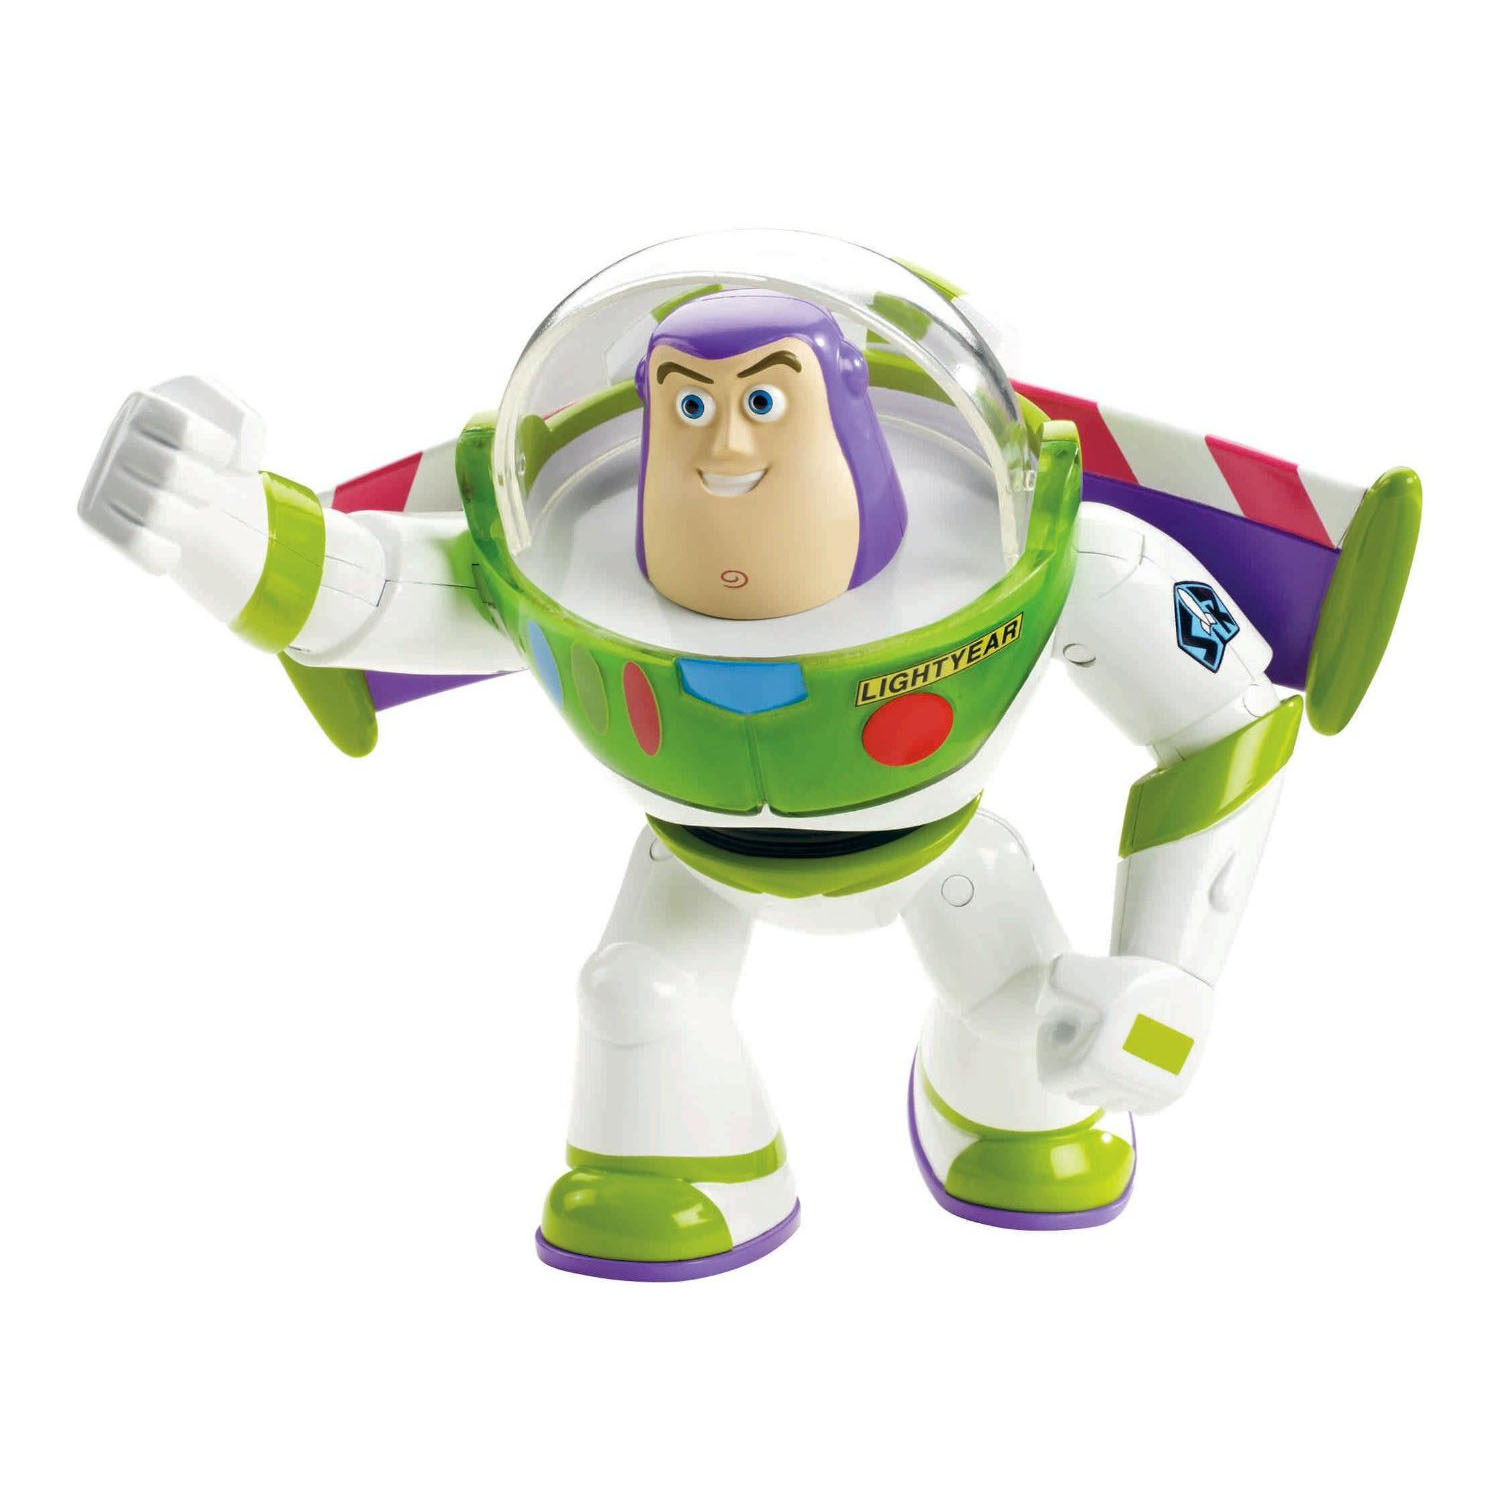 Toy Story Toys : Toy story toys buzz lightyear talk and glow deluxe